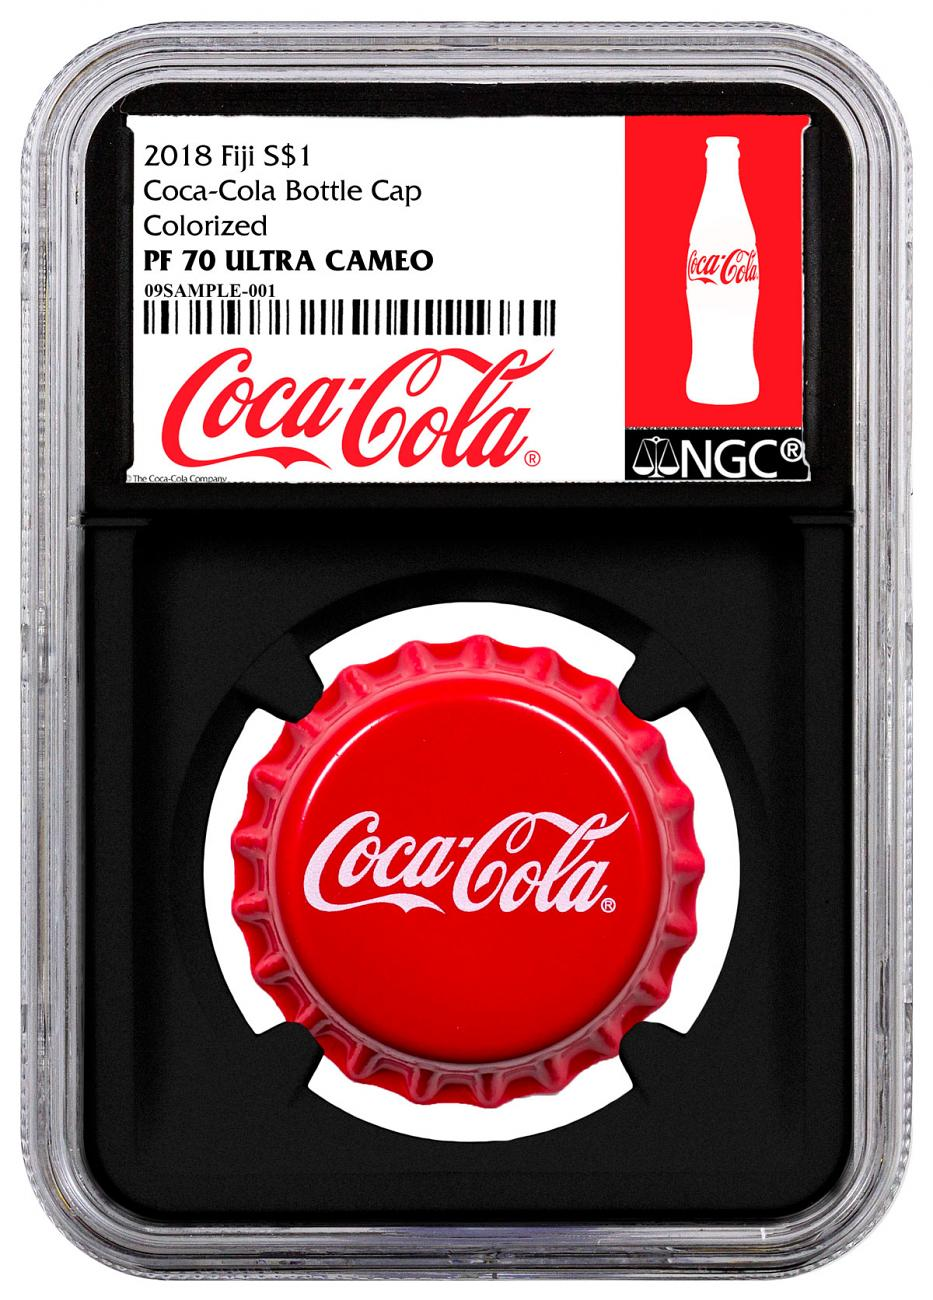 2018 Fiji Coca-Cola Bottle Cap-Shaped 6 g Silver Colorized Proof $1 Coin NGC PF70 UC Black Core Holder Exclusive Coca-Cola Label